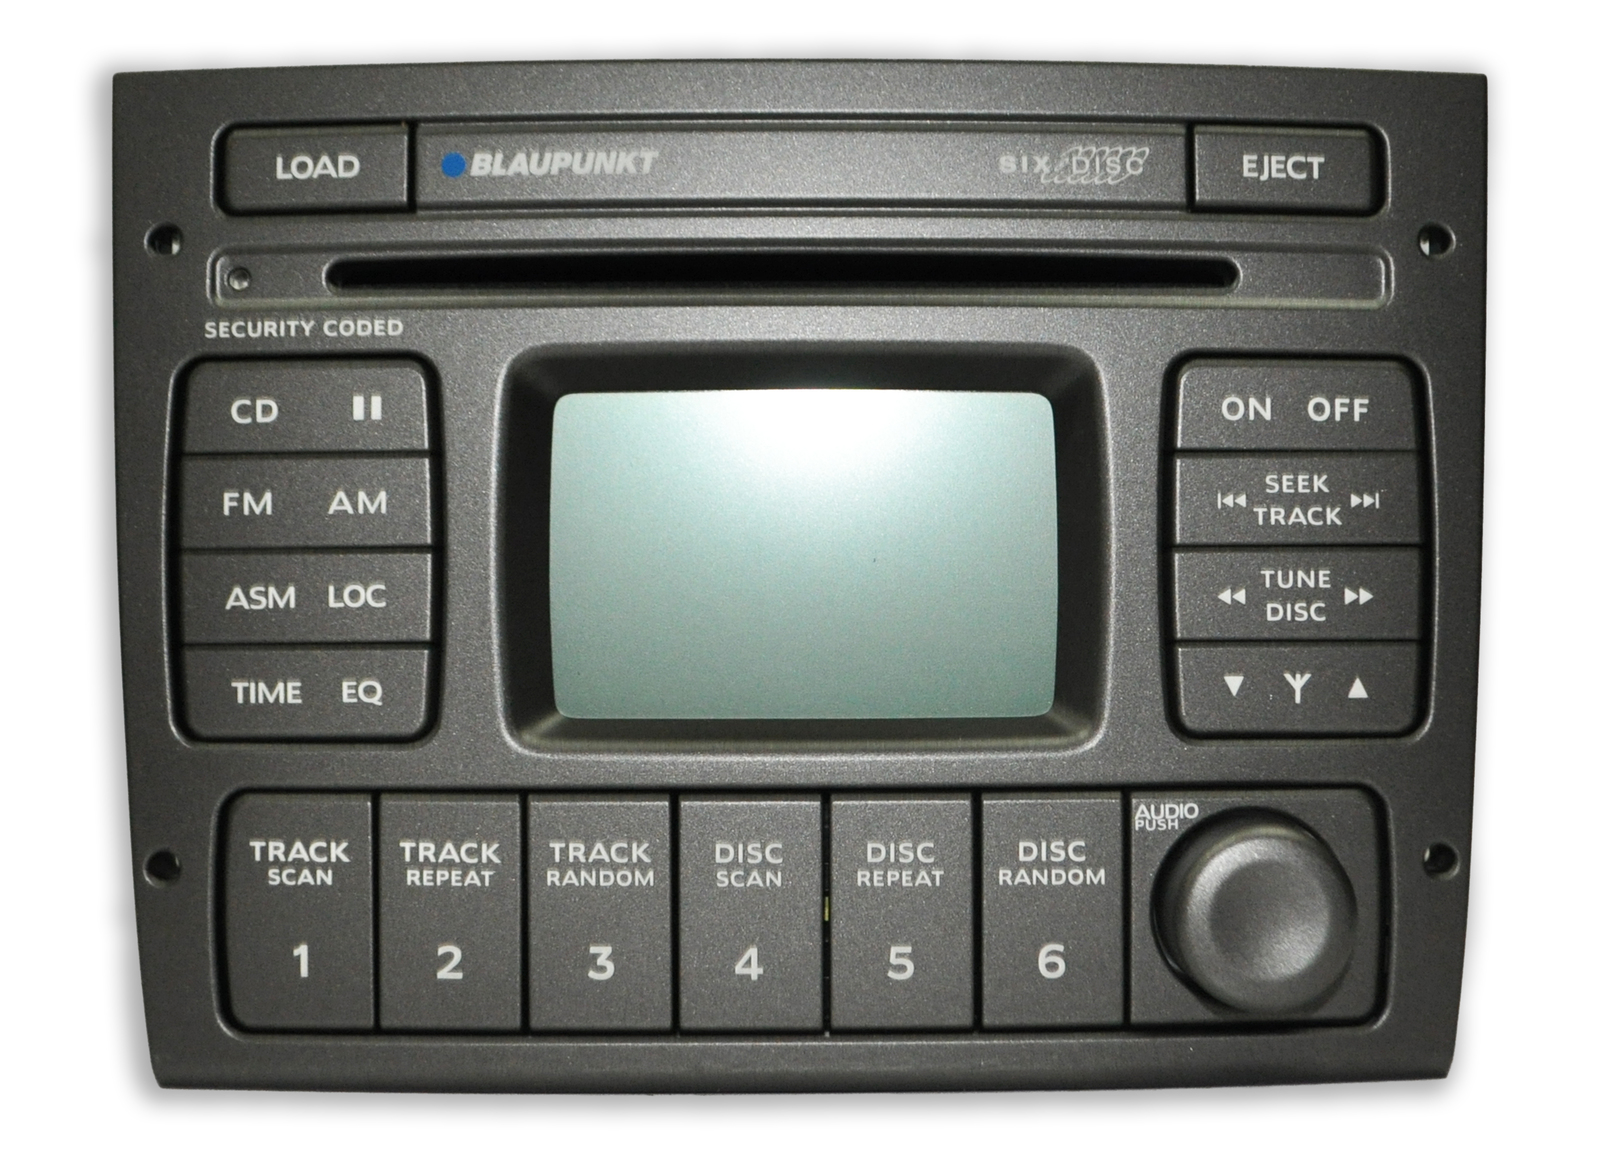 E Fef Fc Fca Deb A A likewise  also Hqdefault together with Hw Dual in addition Maxresdefault. on blaupunkt cd player